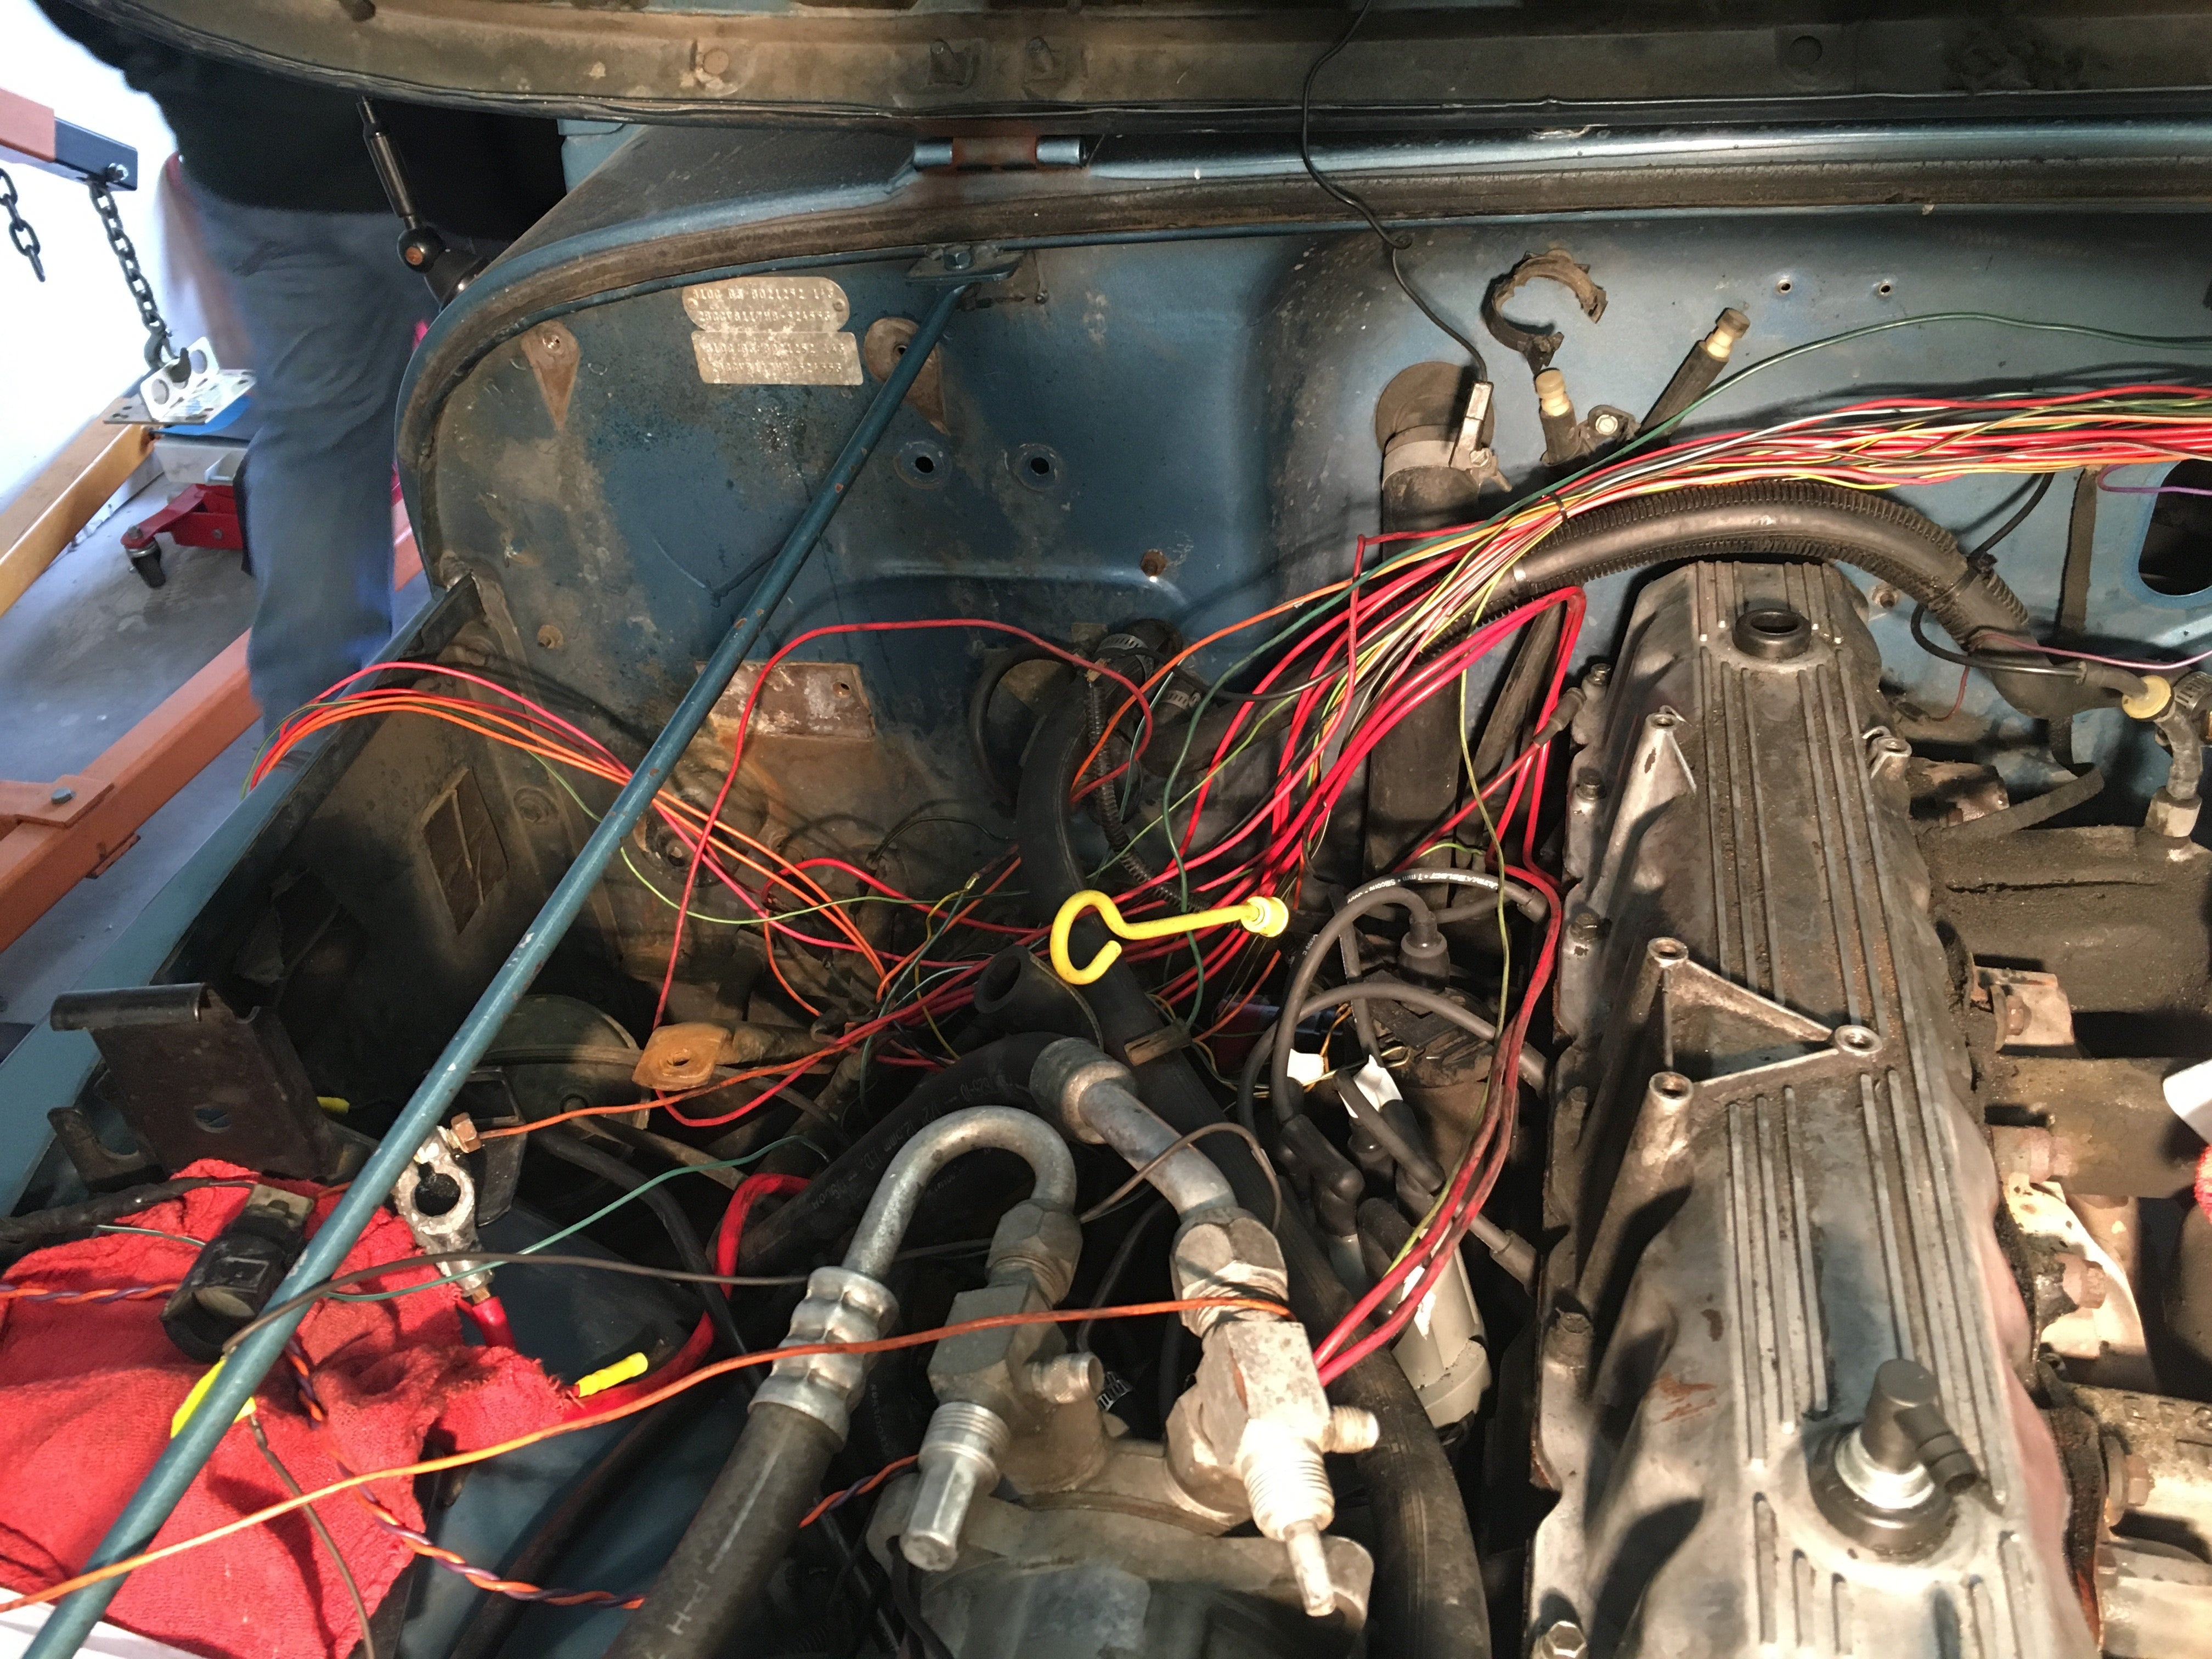 IMG_1560?1676987451247448055 1987 yj fuel injection conversion howell jeepforum com howell wiring harness at webbmarketing.co